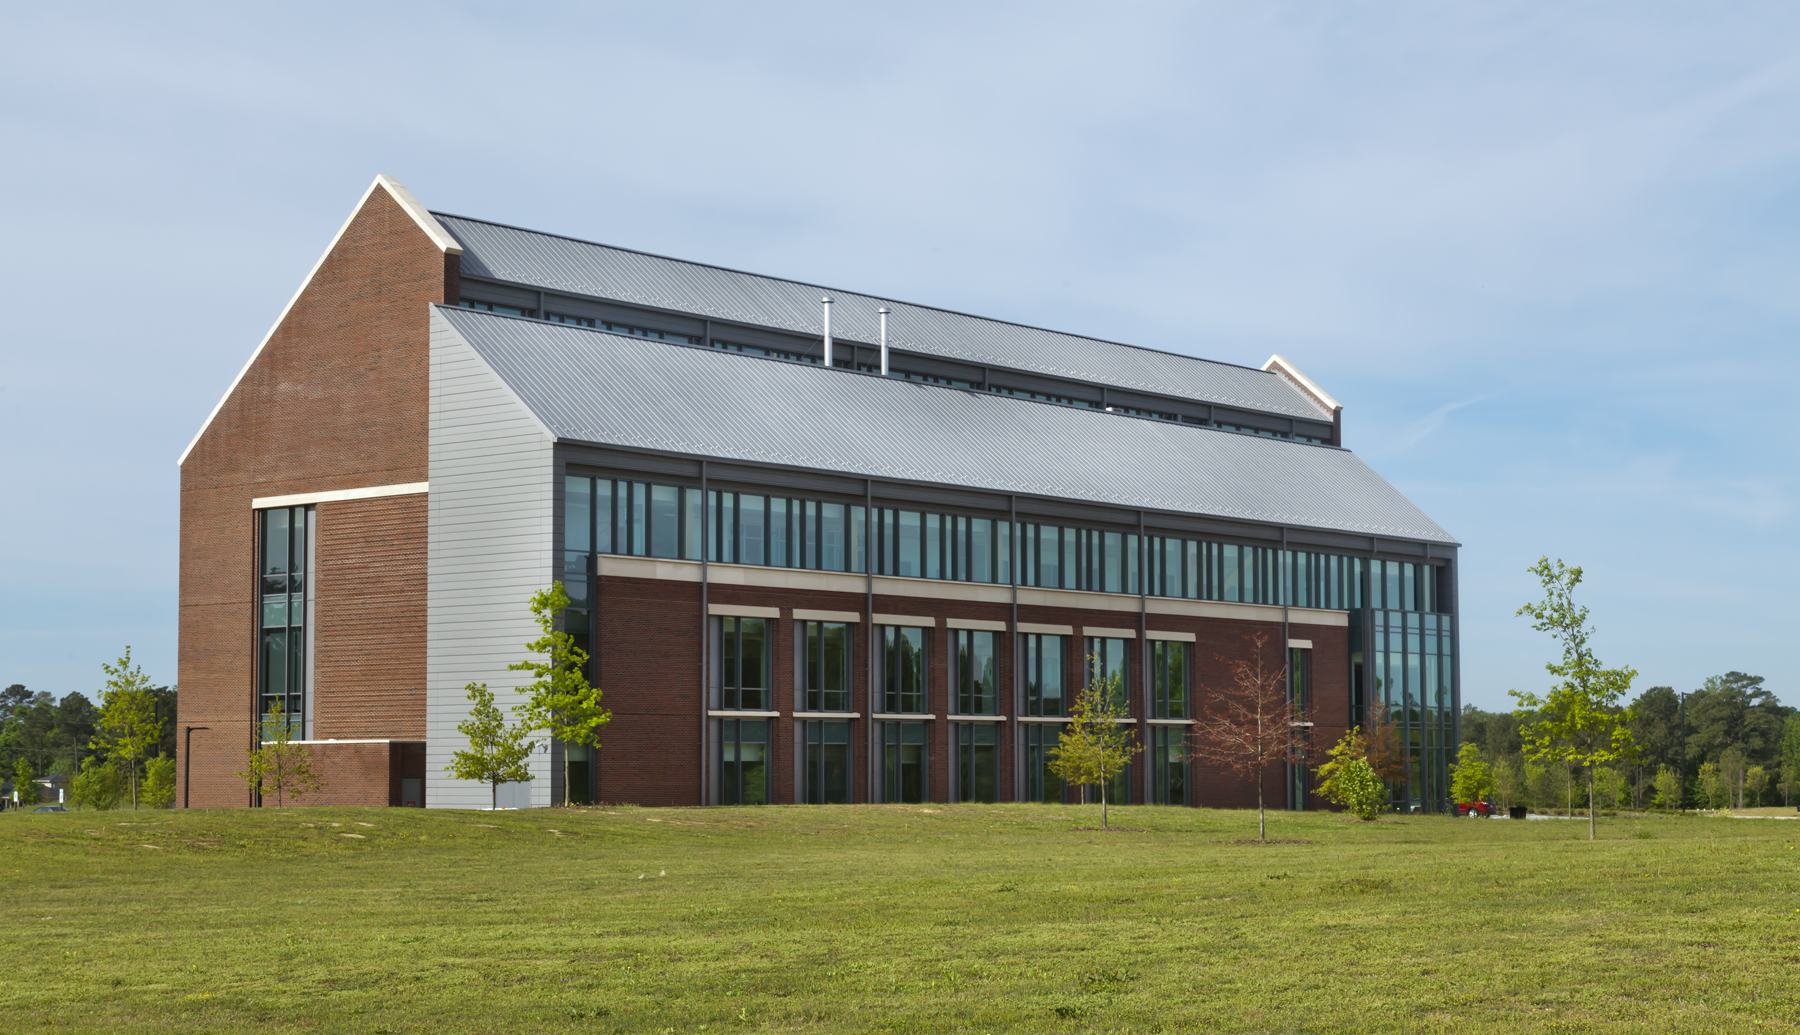 A total of 40,000 square feet of interlocking zinc panels are used on the walls and standing-seam zinc panels are installed on the roof of the building to provide long-lasting durability and an impressive visual aesthetic.